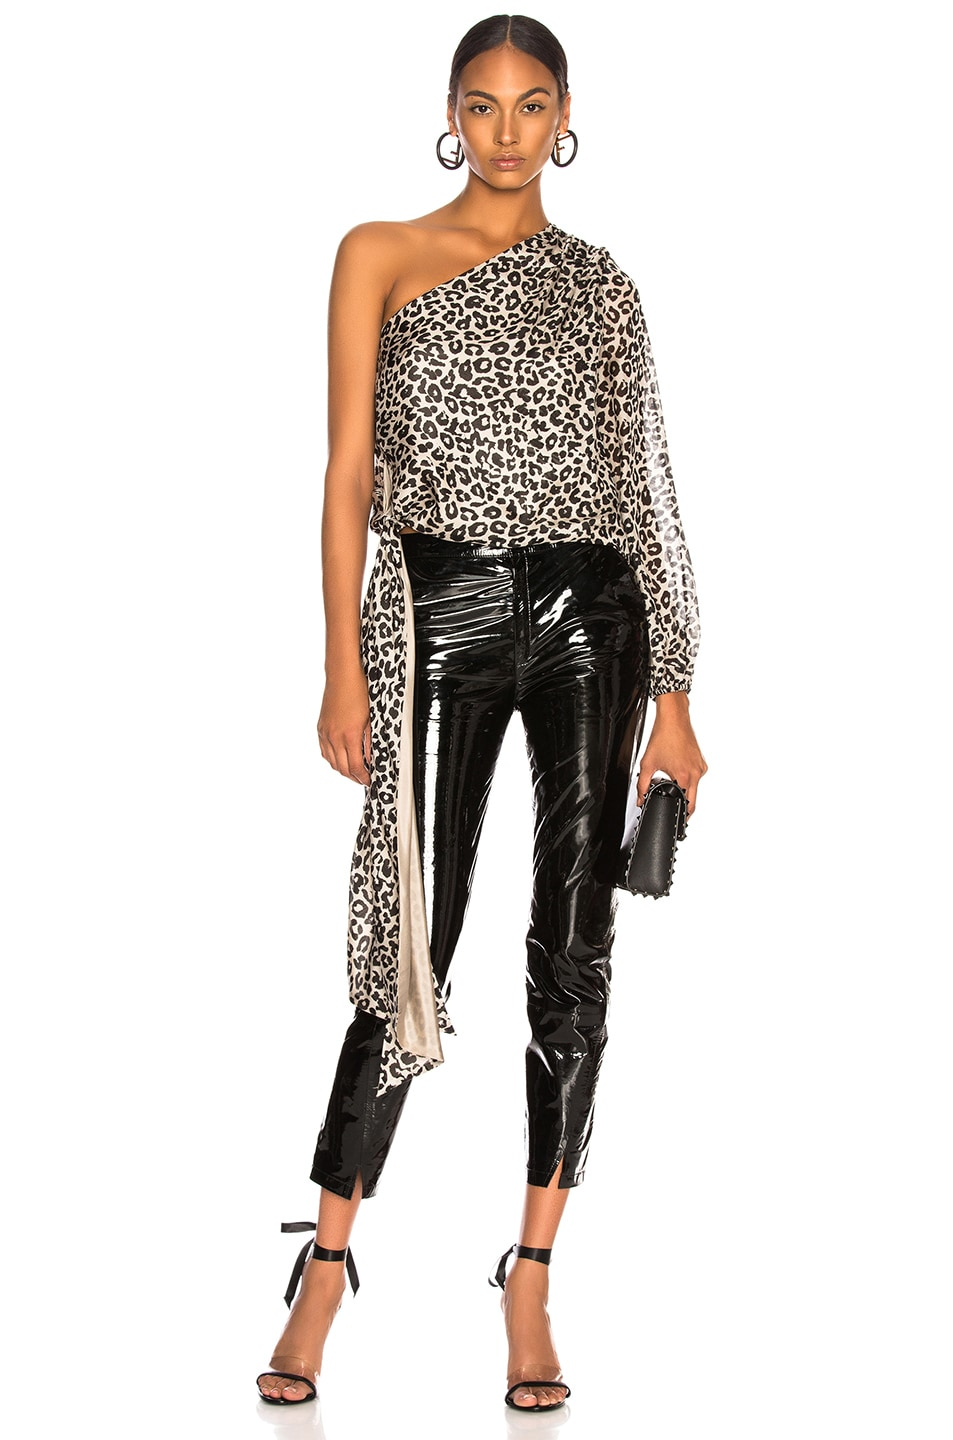 4b8bb5929c75d Image 1 of Michelle Mason One Sleeve Top with Tie in White Leopard